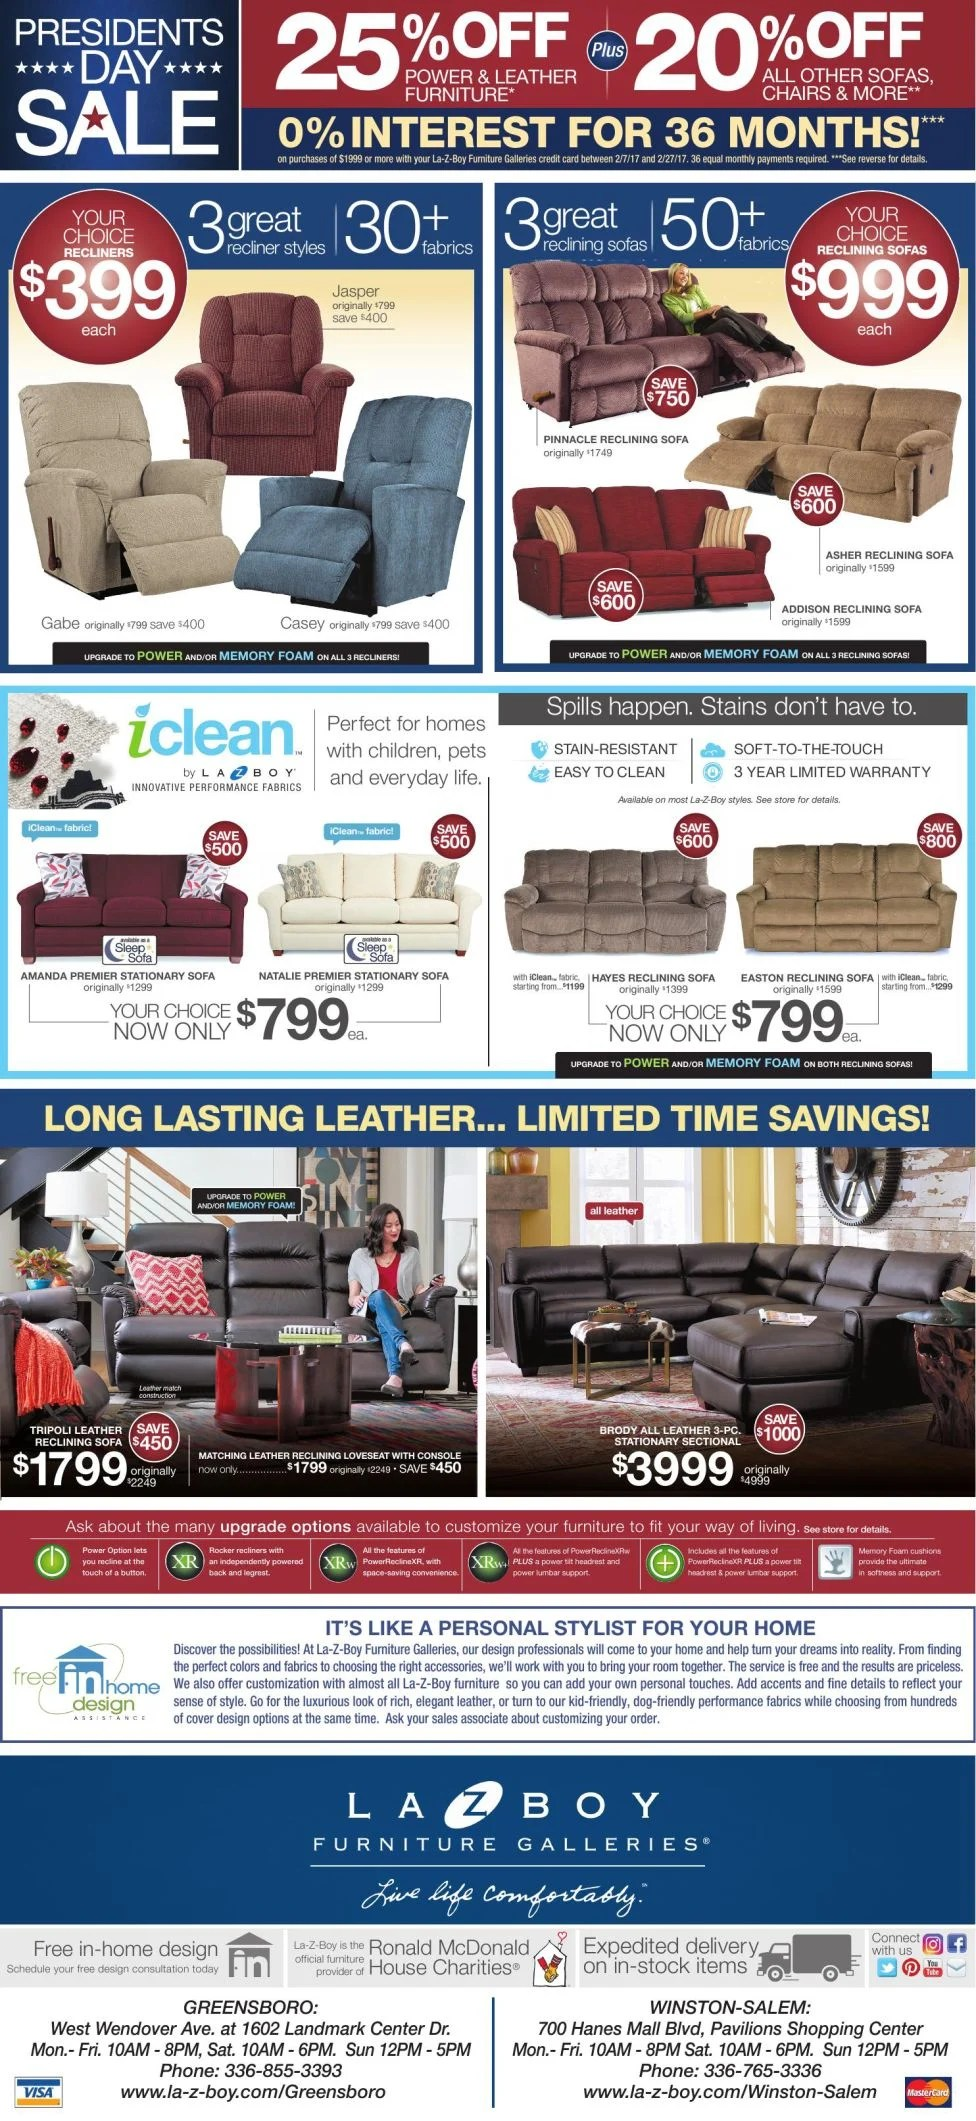 Mutable Download Pdf 2017 Presidents Day Furniture Sale Flyer 2017 Presidents Day Furniture Sale Flyer Presidents Day Furniture Sales Phoenix Presidents Day Sofa Sales houzz-02 Presidents Day Furniture Sales